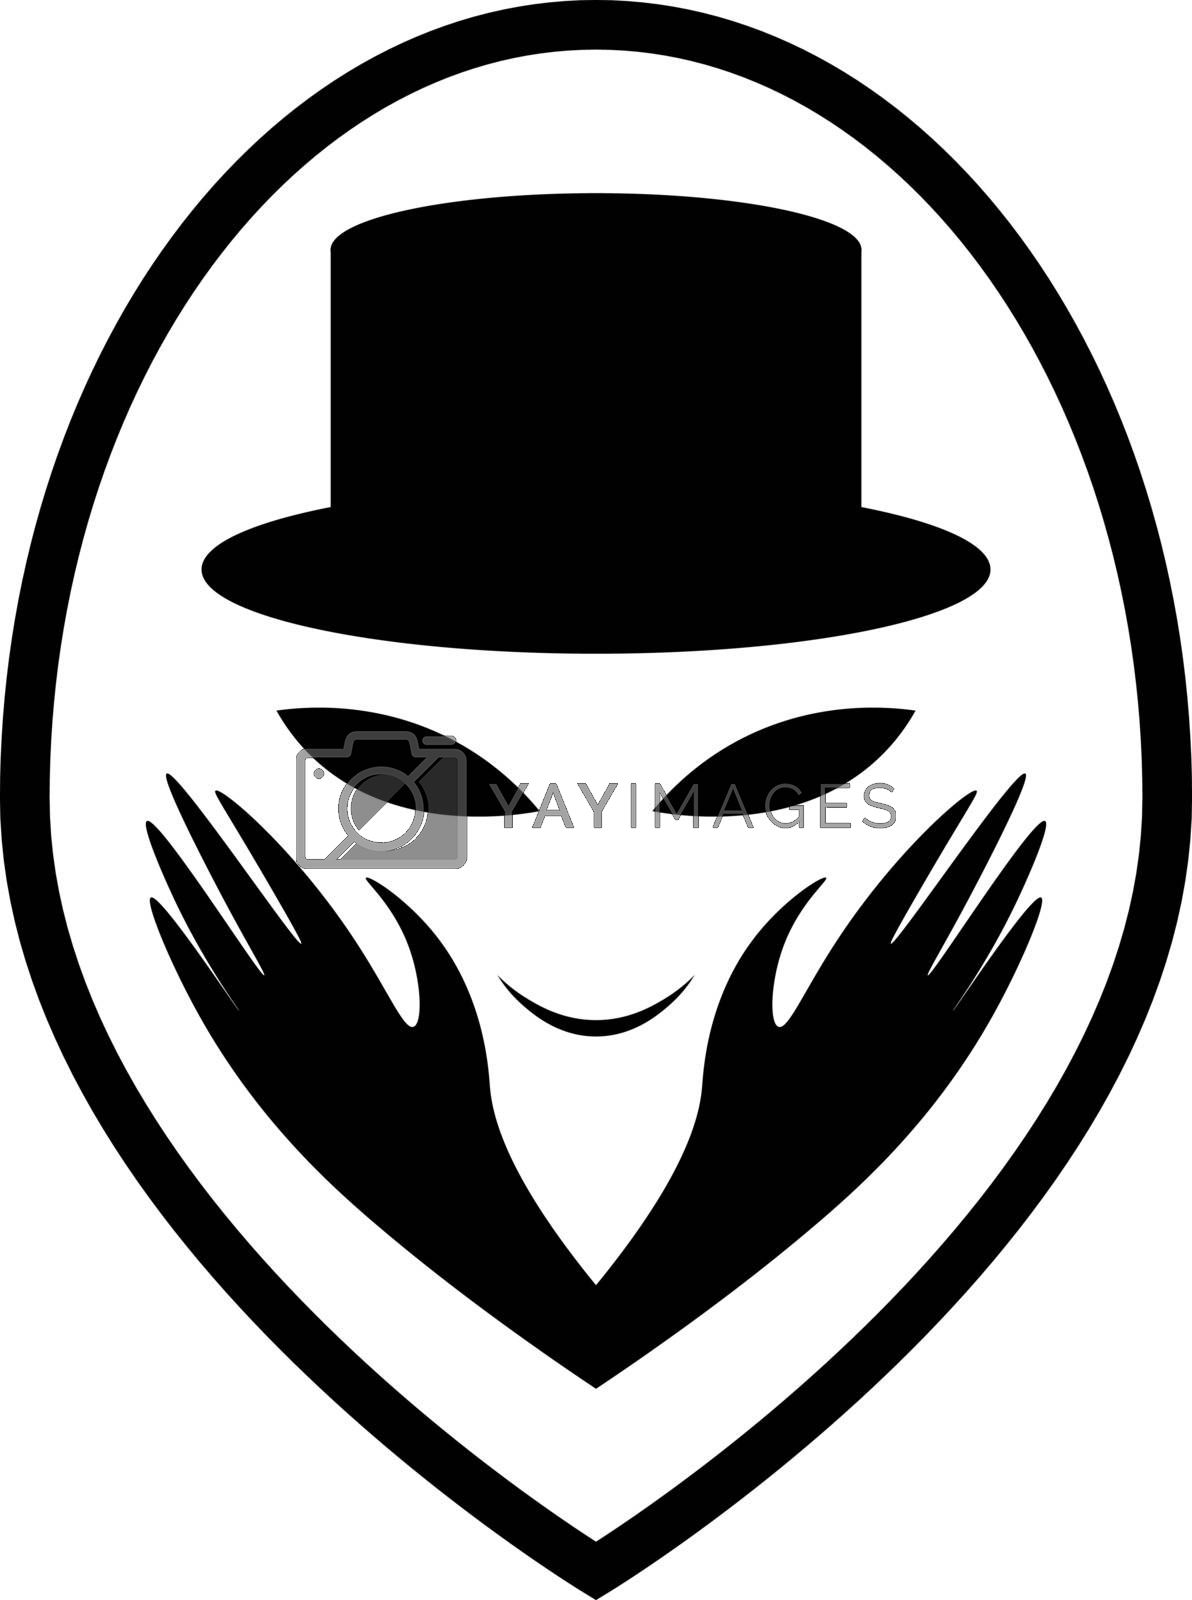 smiling alien face in black magician cylinder hat and gloves